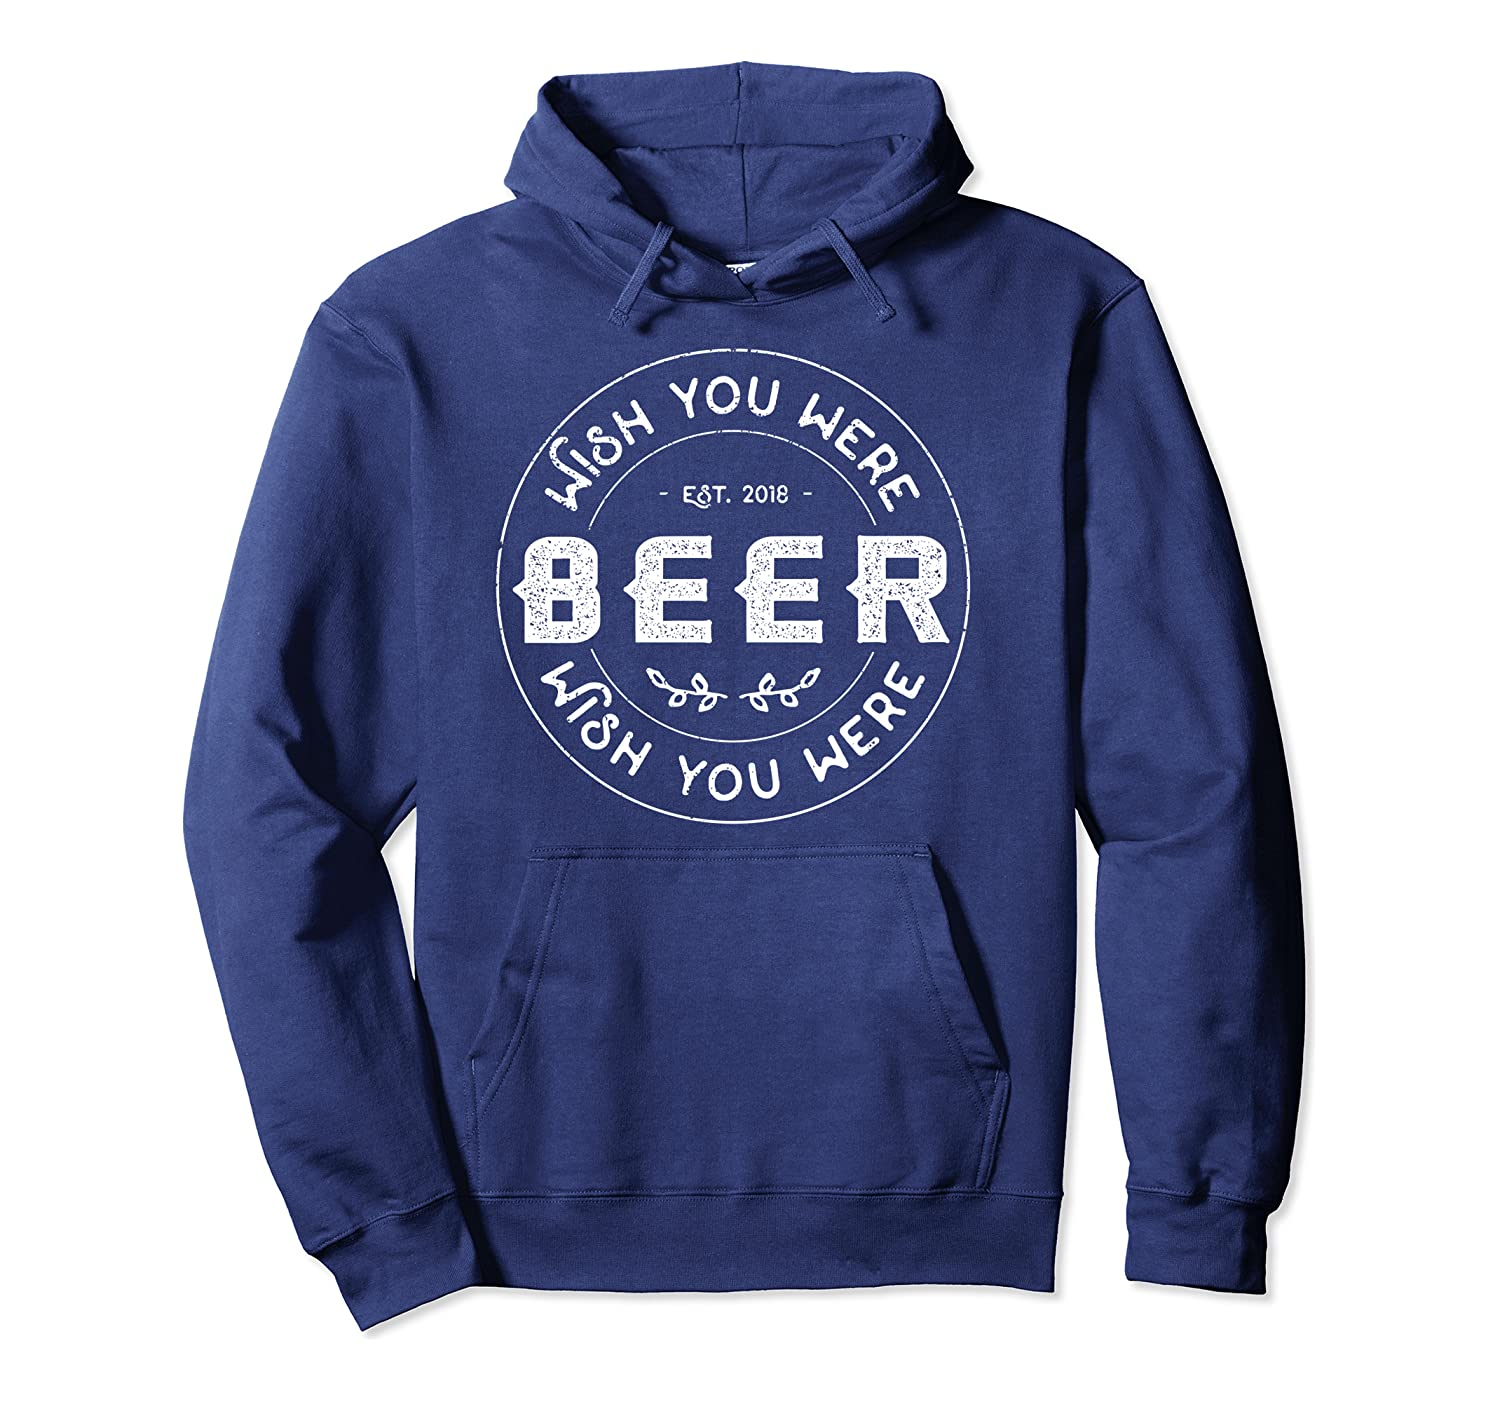 Funny Beer Humor For Men Women, I Wish You Were Beer White Pullover Hoodie